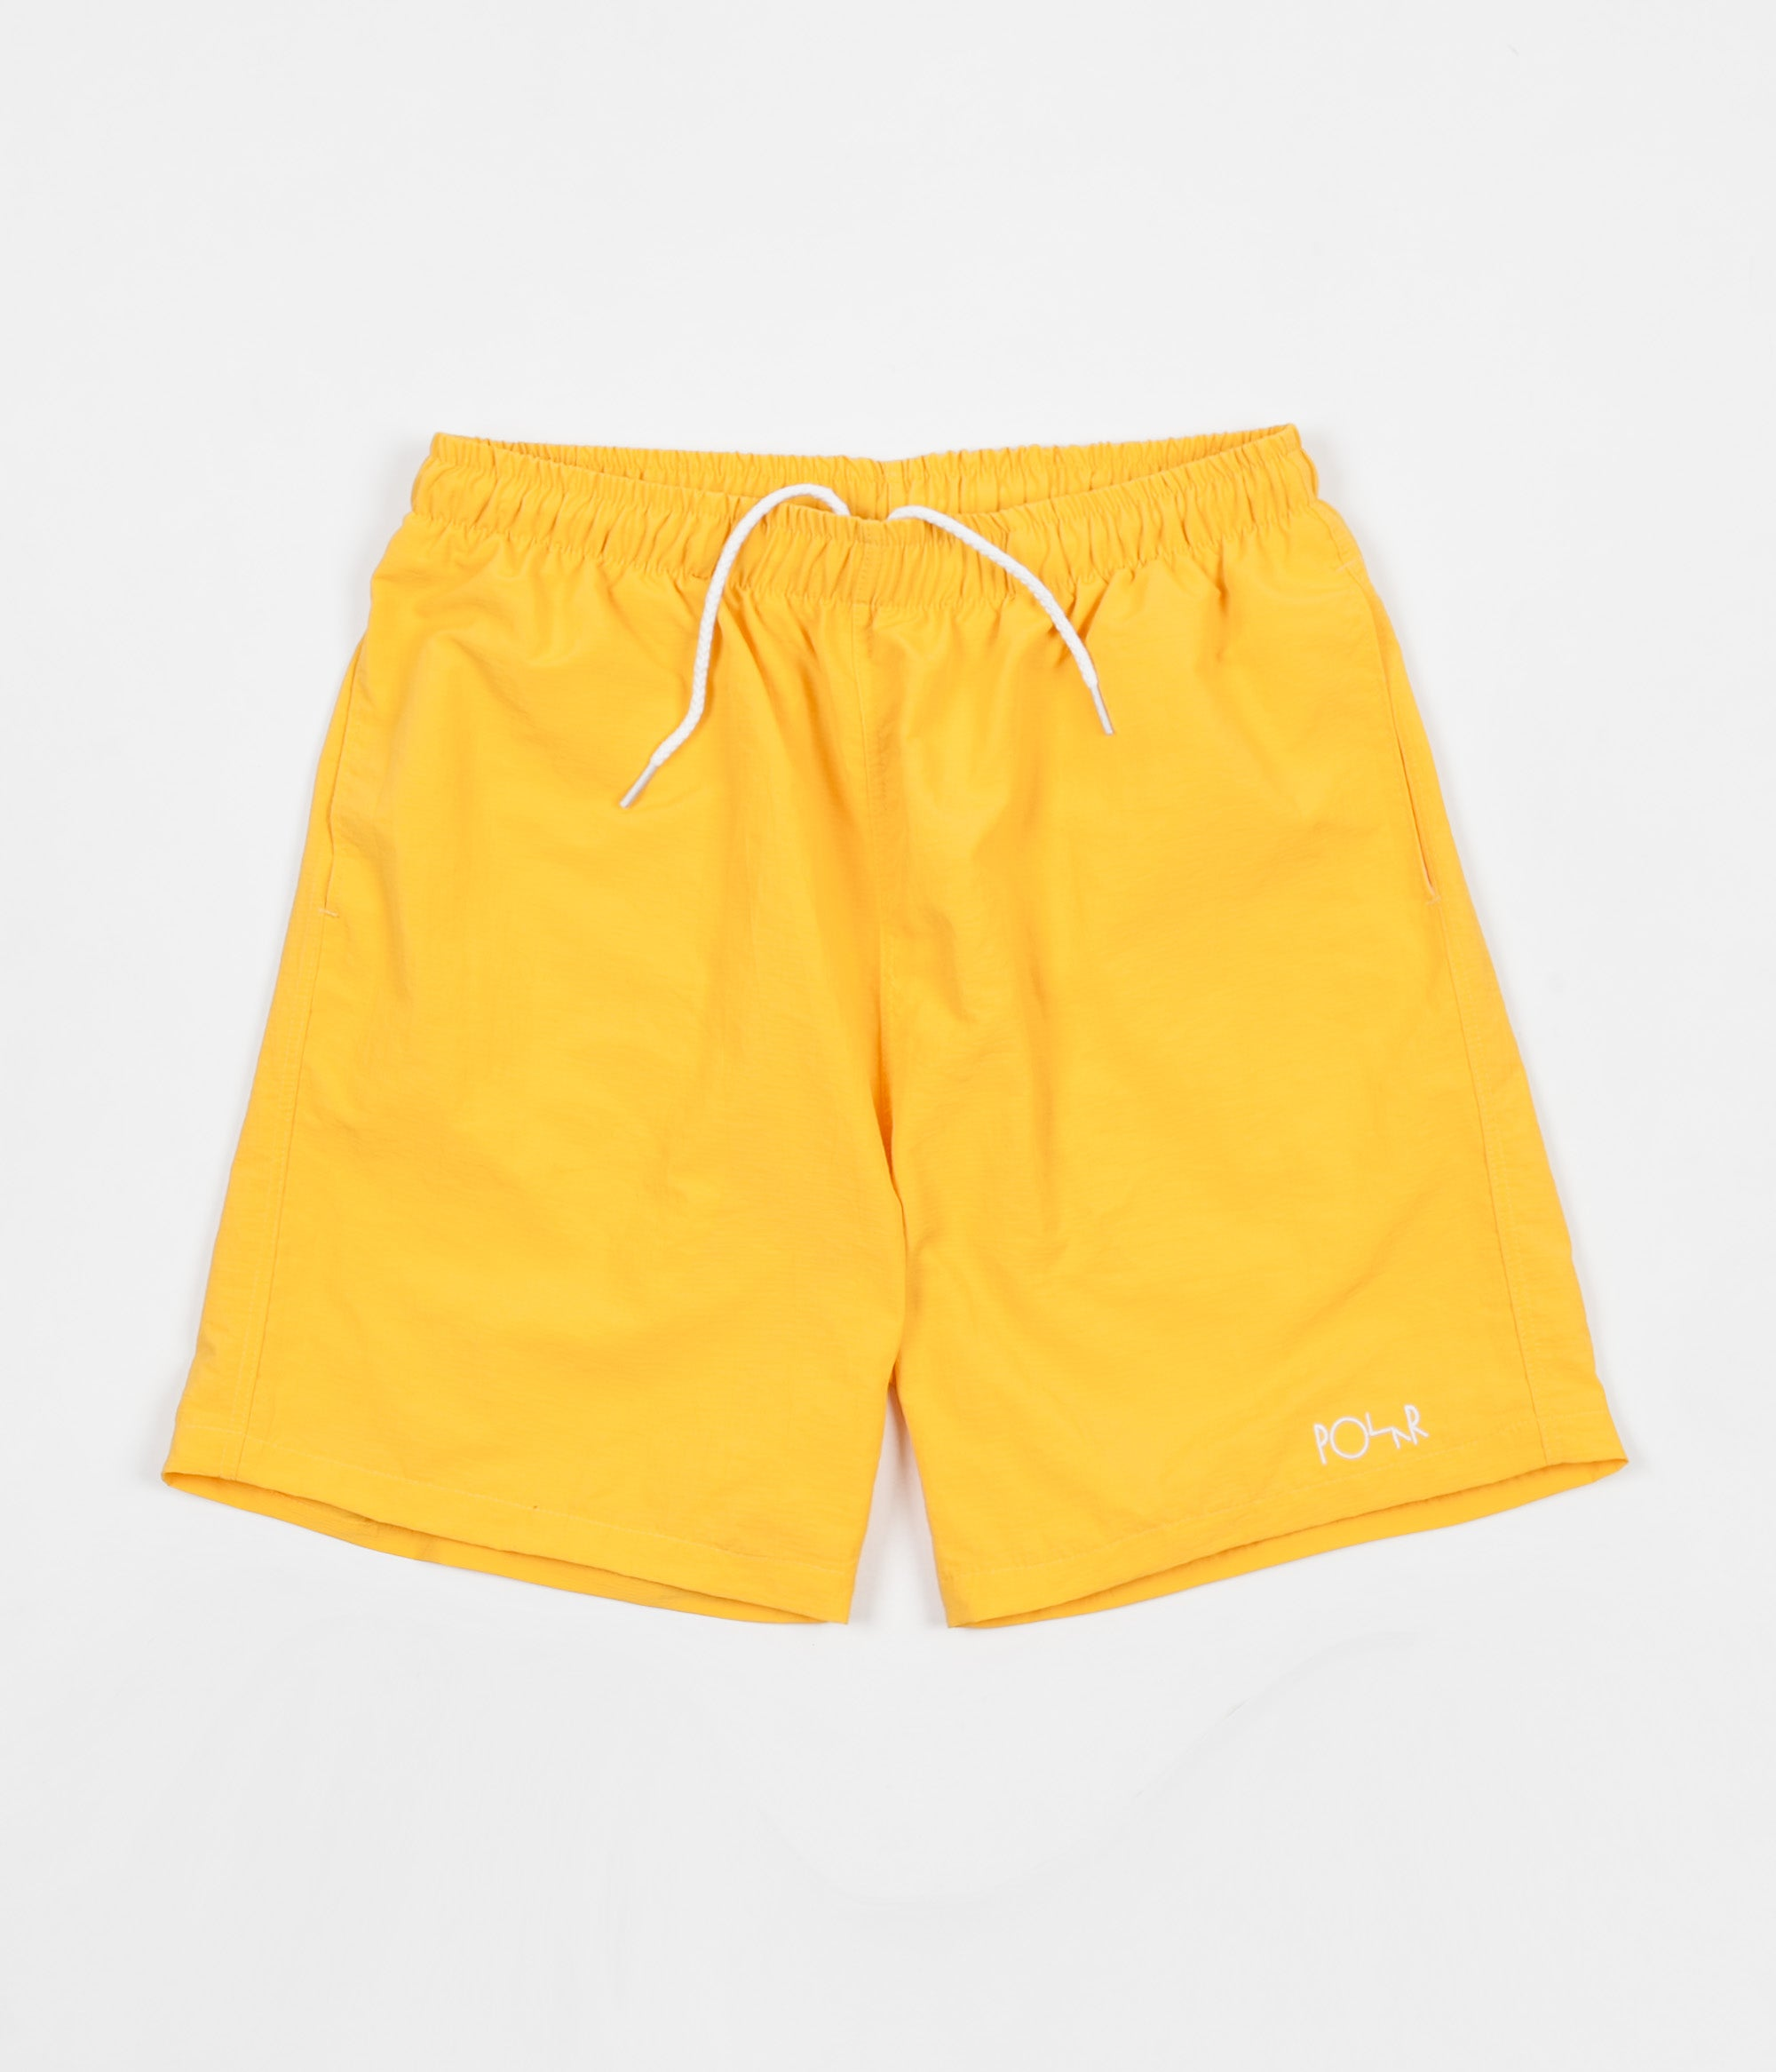 Polar Swim Shorts - Yellow